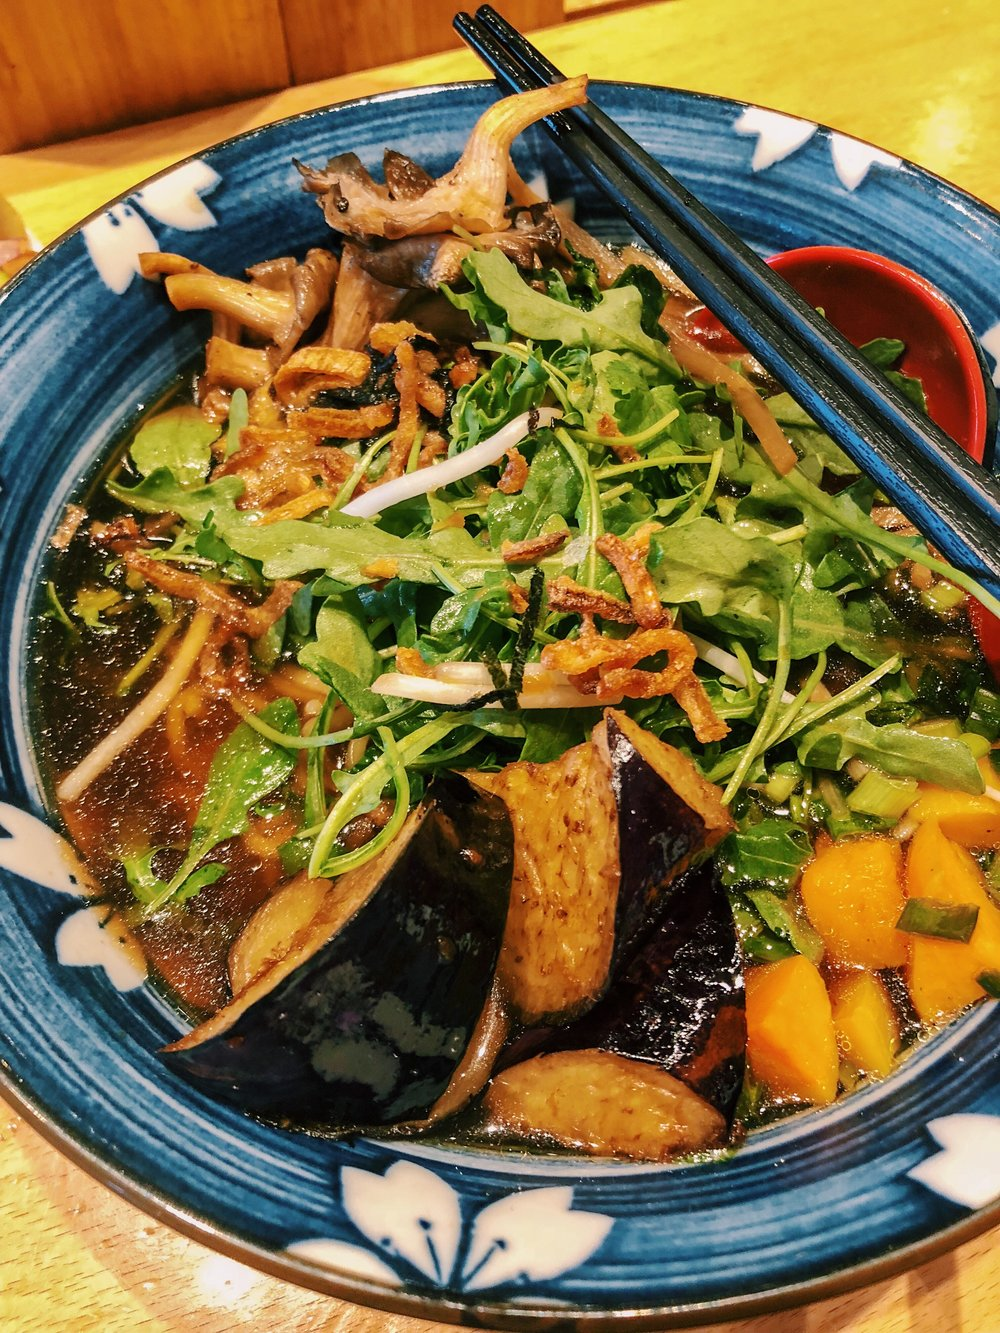 The  Caramelised Fennel Ramen  has big chunks of Fried Eggplant in it at  Boke Bowl